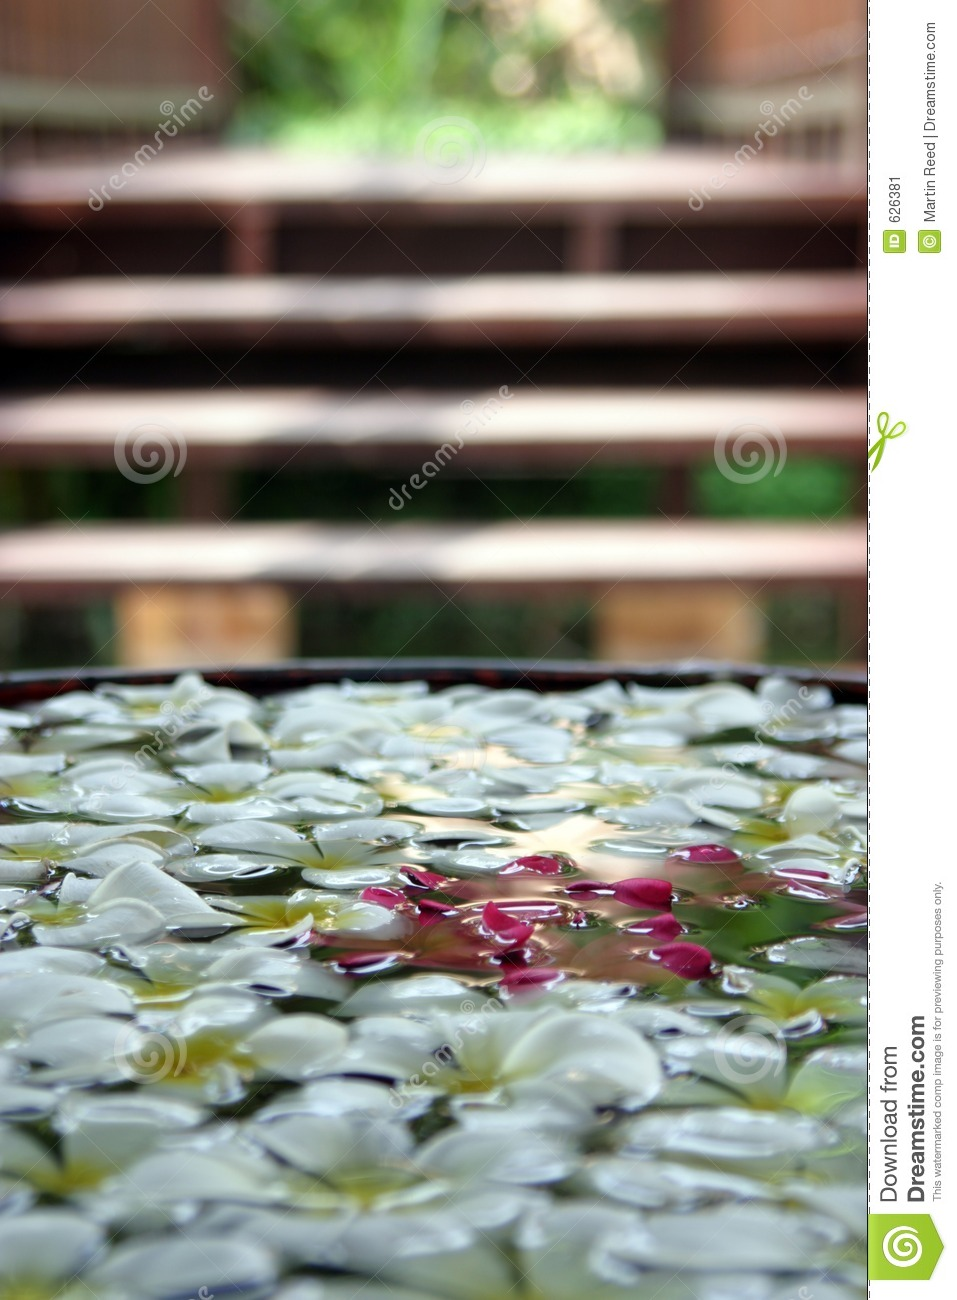 Decorative flowers floating in water stock image image for Floating flowers in water